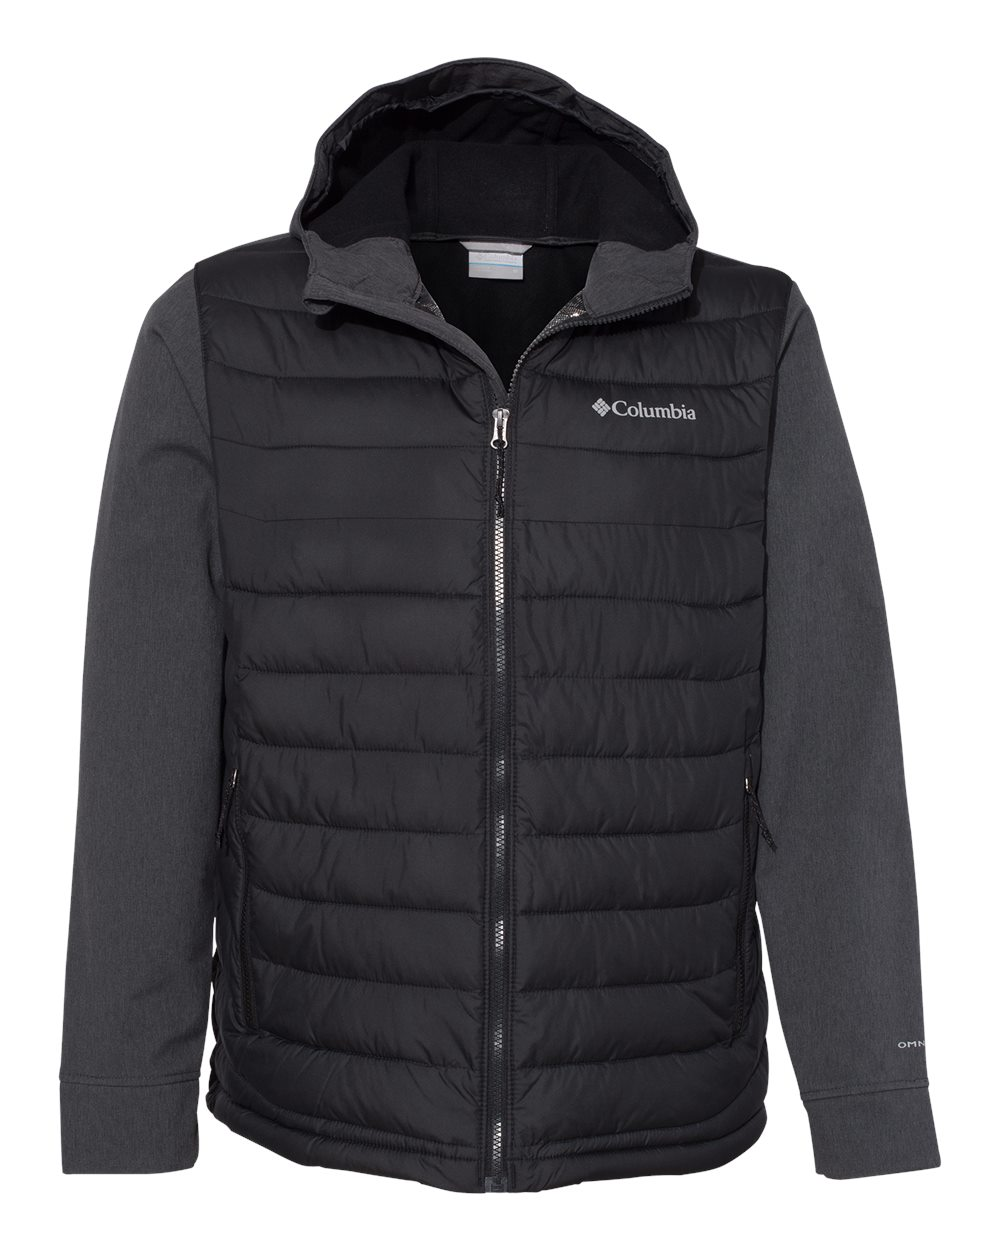 Columbia 186463 - Powder Lite Hybrid Jacket